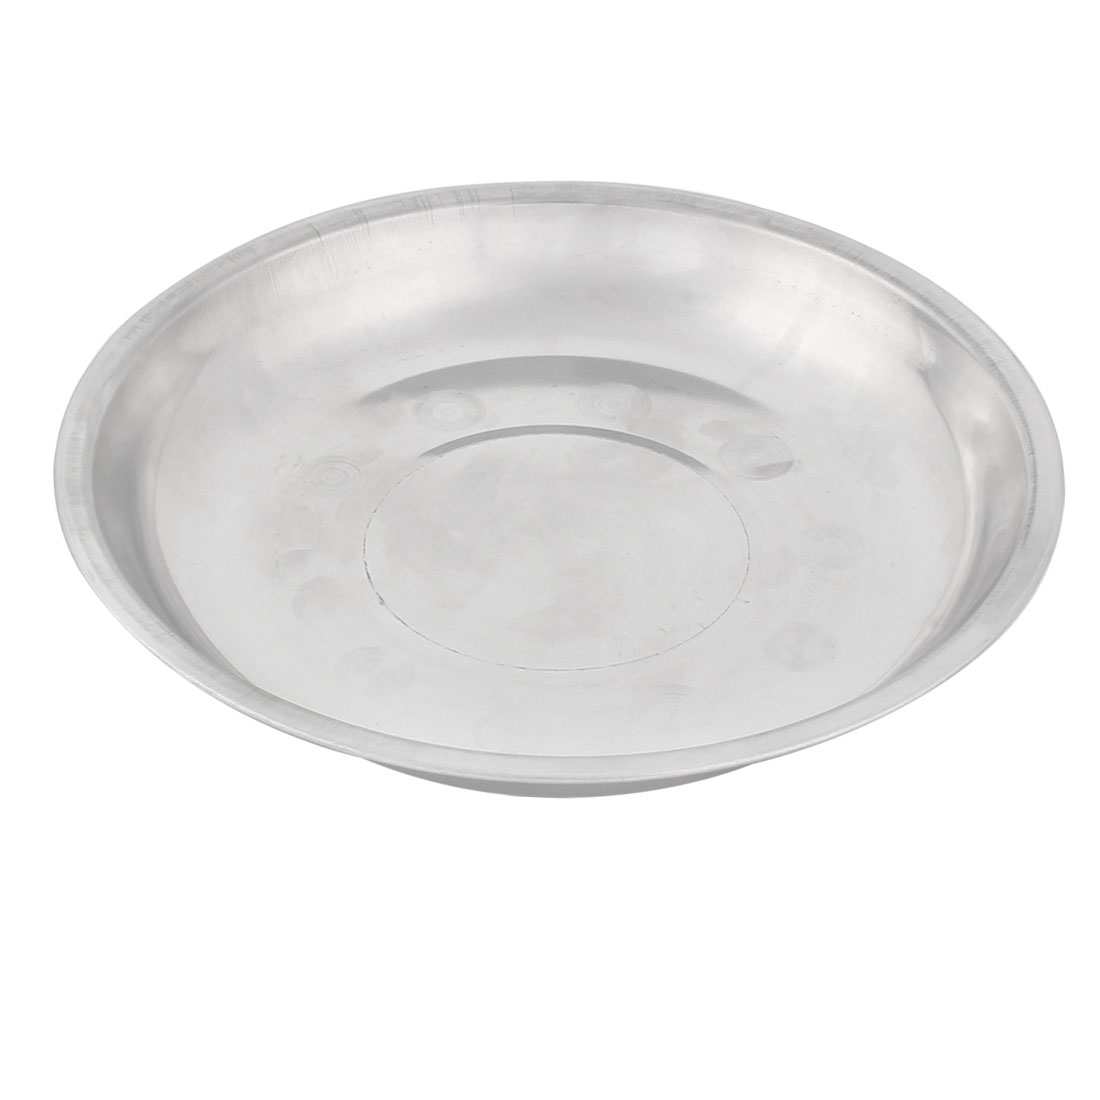 Household Kitchen Stainless Steel Round Shaped Dish Plate Silver Tone 23cm Diameter